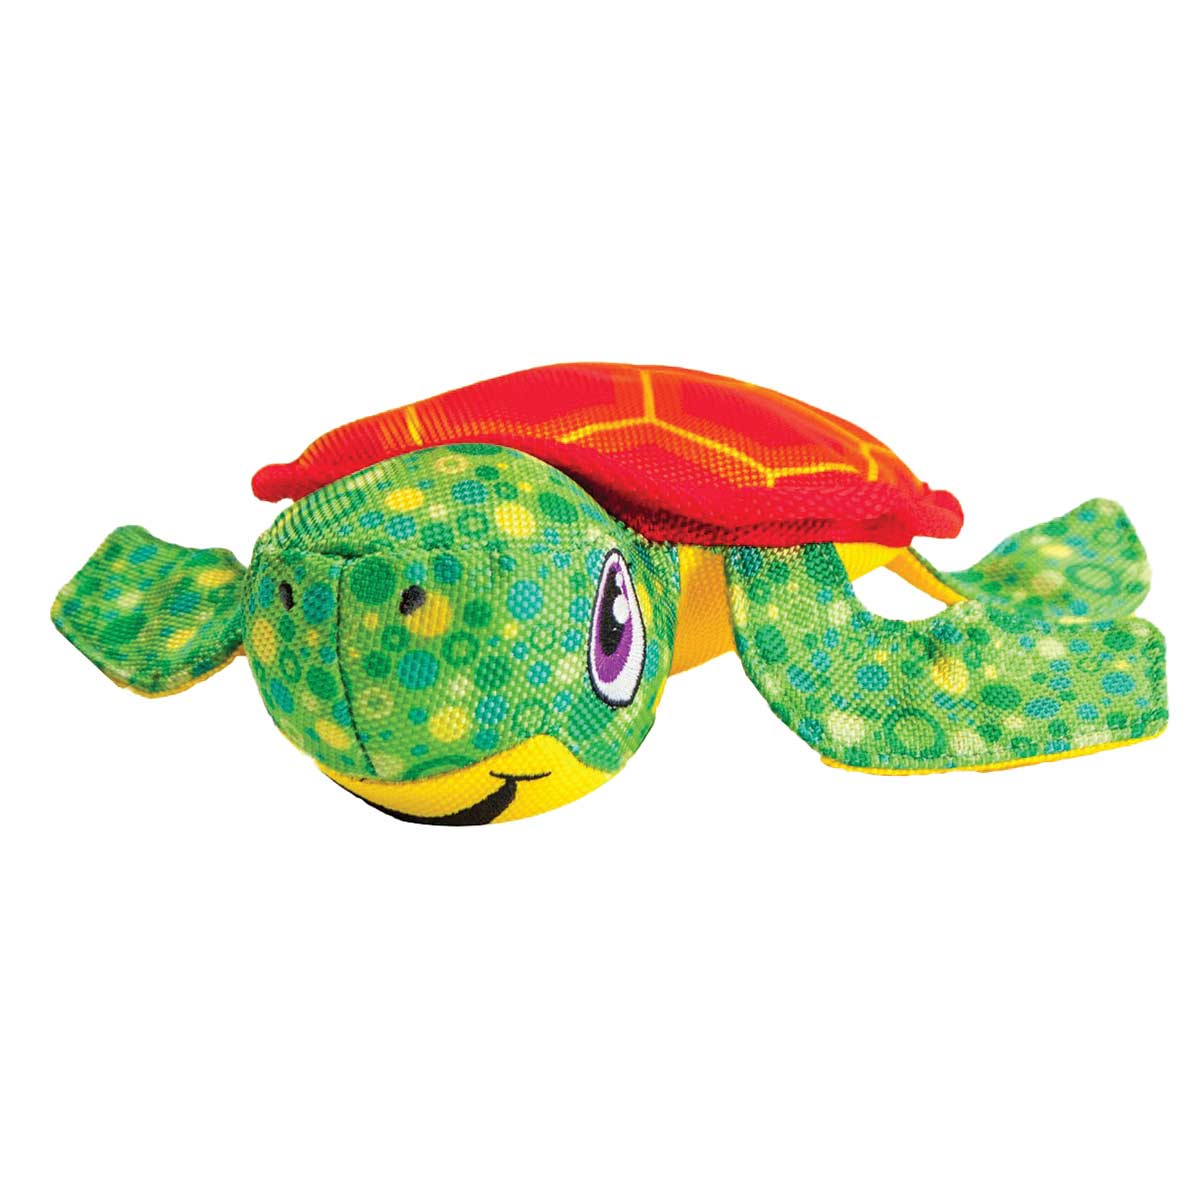 12 inch Outward Hound Floatiez Squeaky Turtle - Dog Water Play